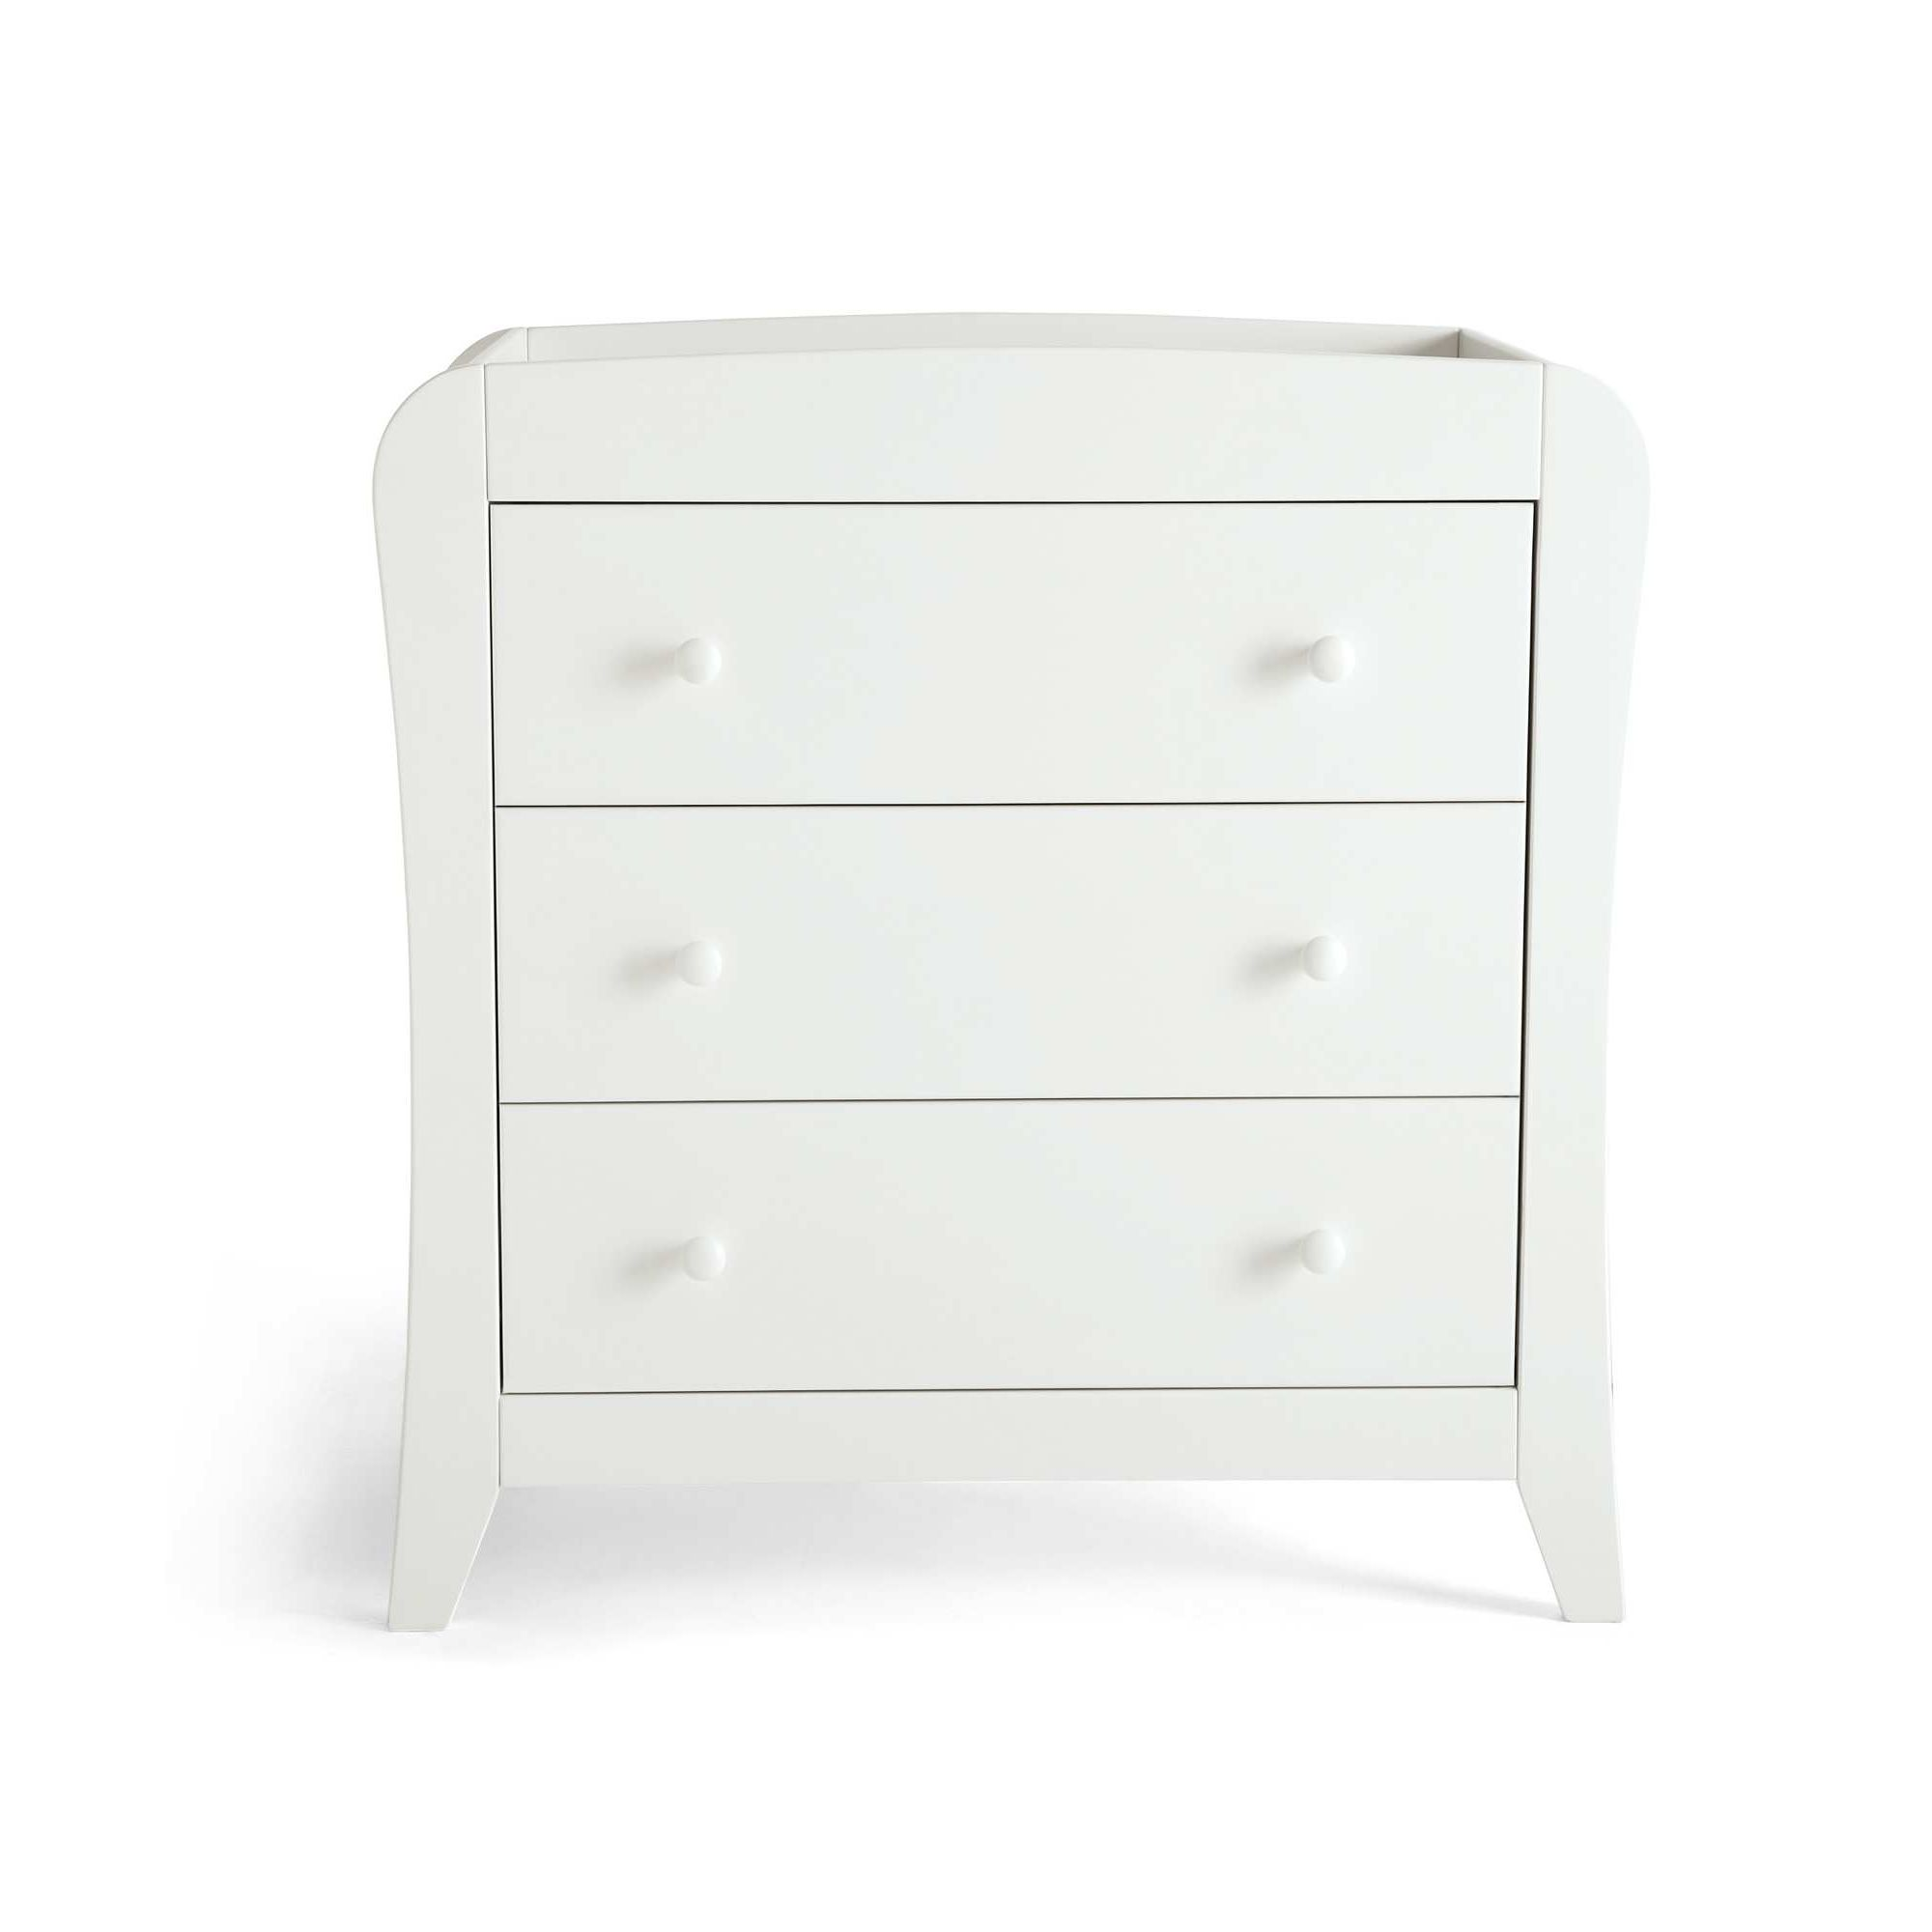 Mamas & Papas - Fern White - Dresser with changer at Tesco Direct